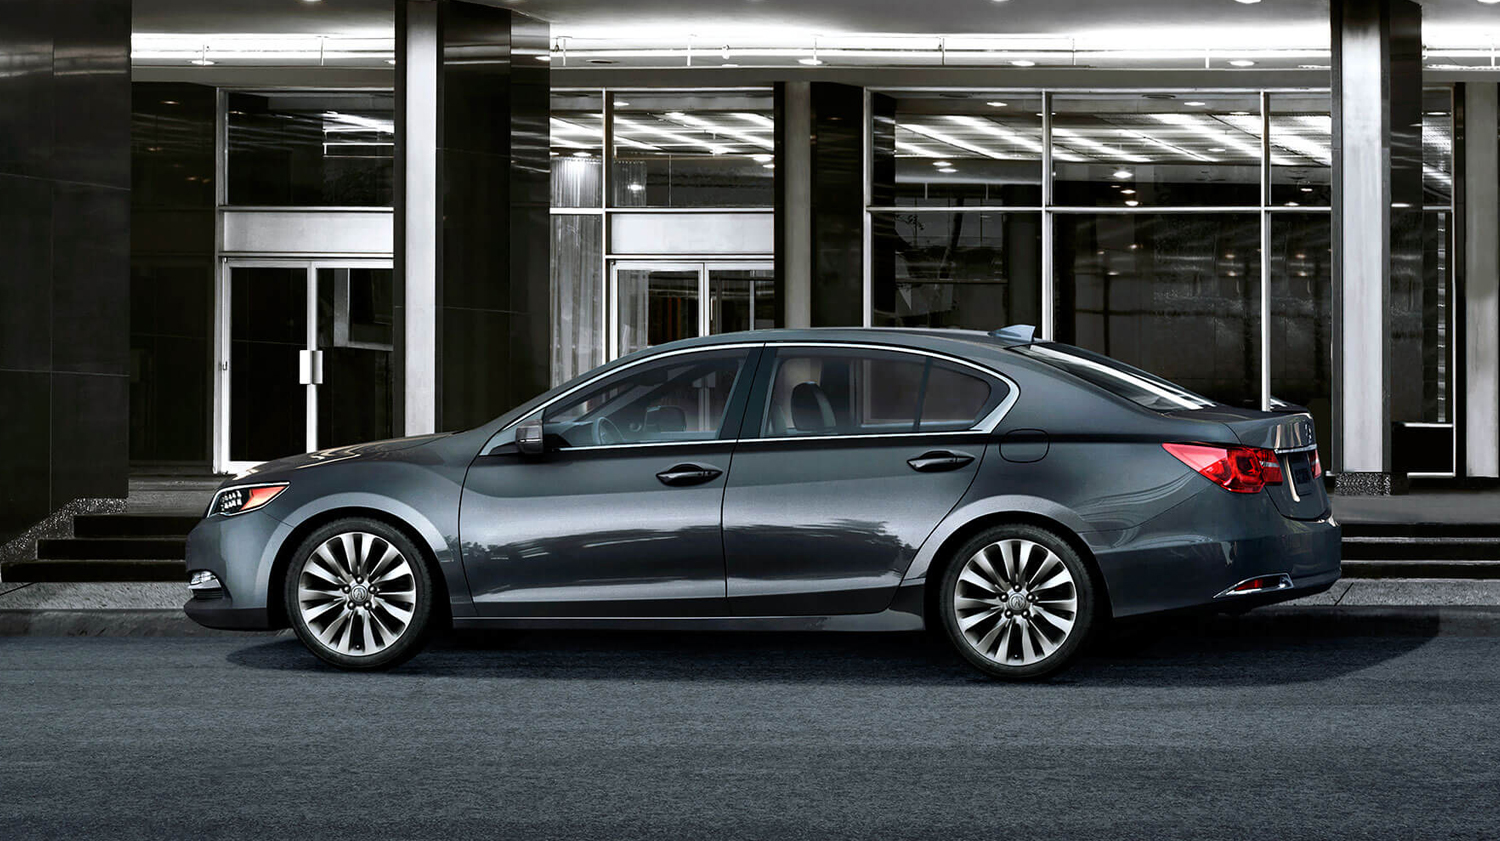 2017 Acura RLX Exterior Side Profile